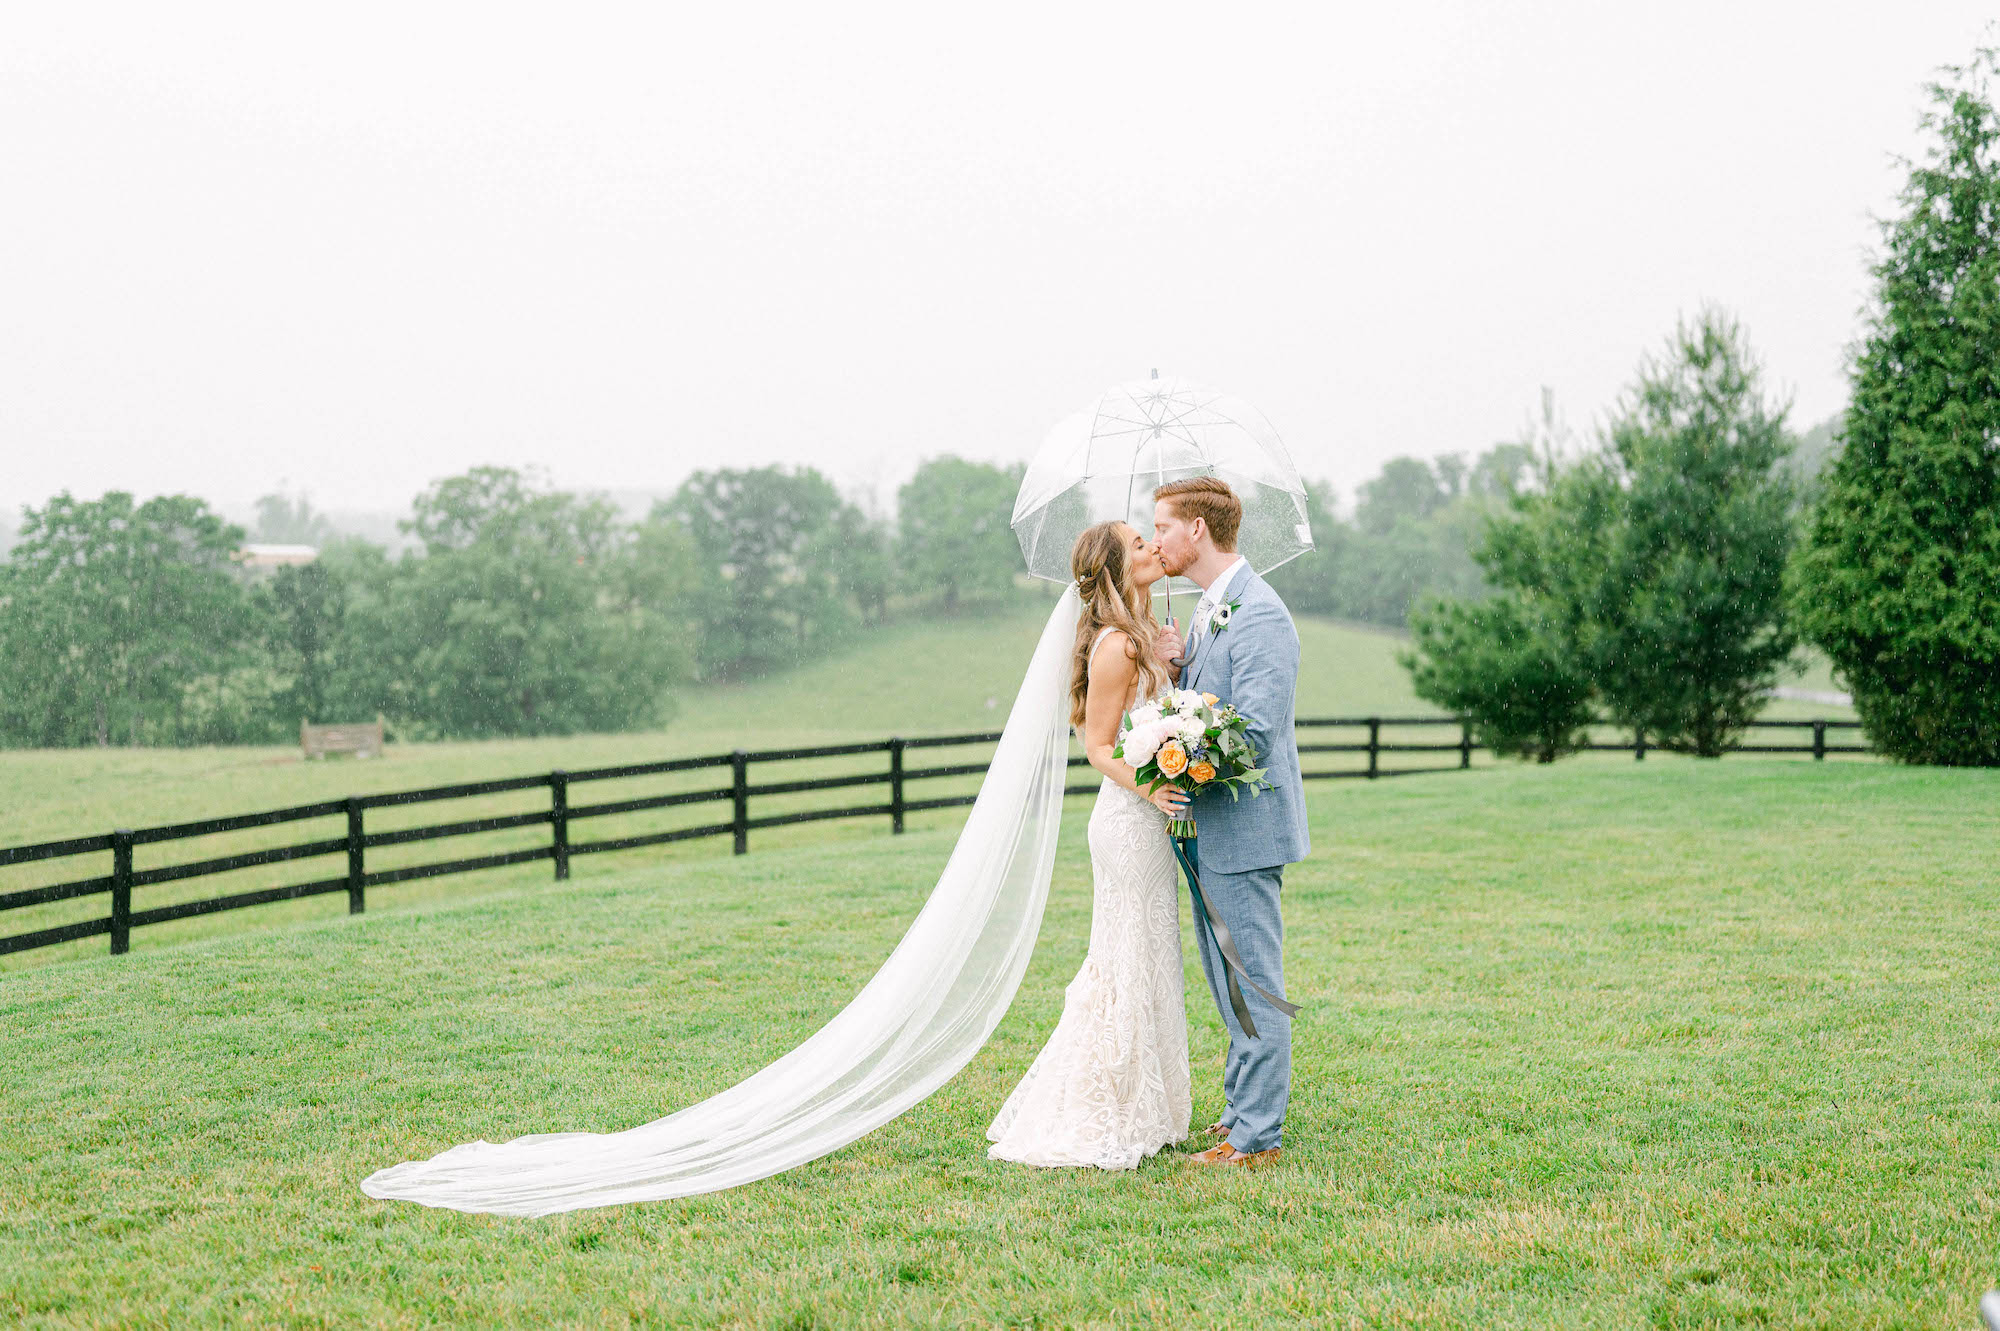 Rainy wedding day with bride and groom at barn wedding venue in green field